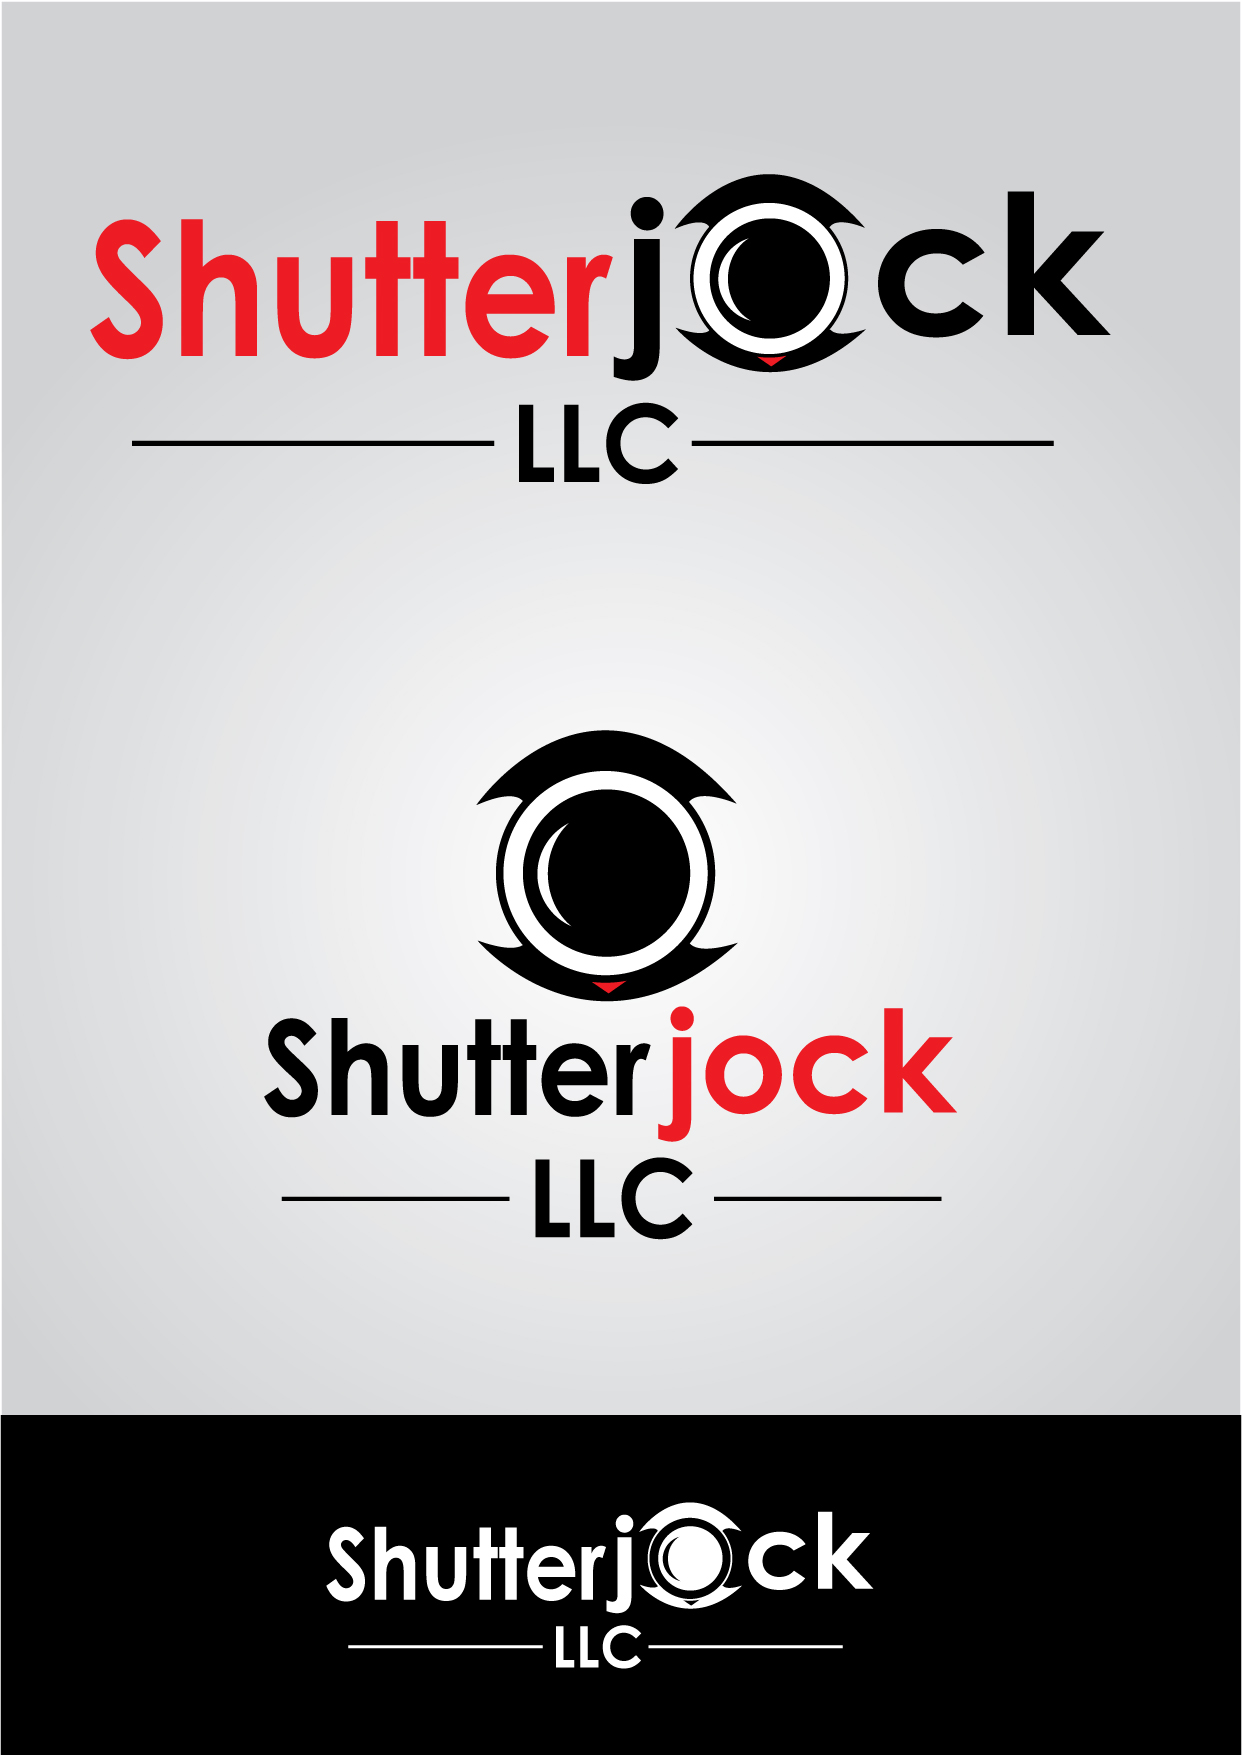 Logo Design by mediaproductionart - Entry No. 54 in the Logo Design Contest Unique Logo Design Wanted for Shutterjock LLC.